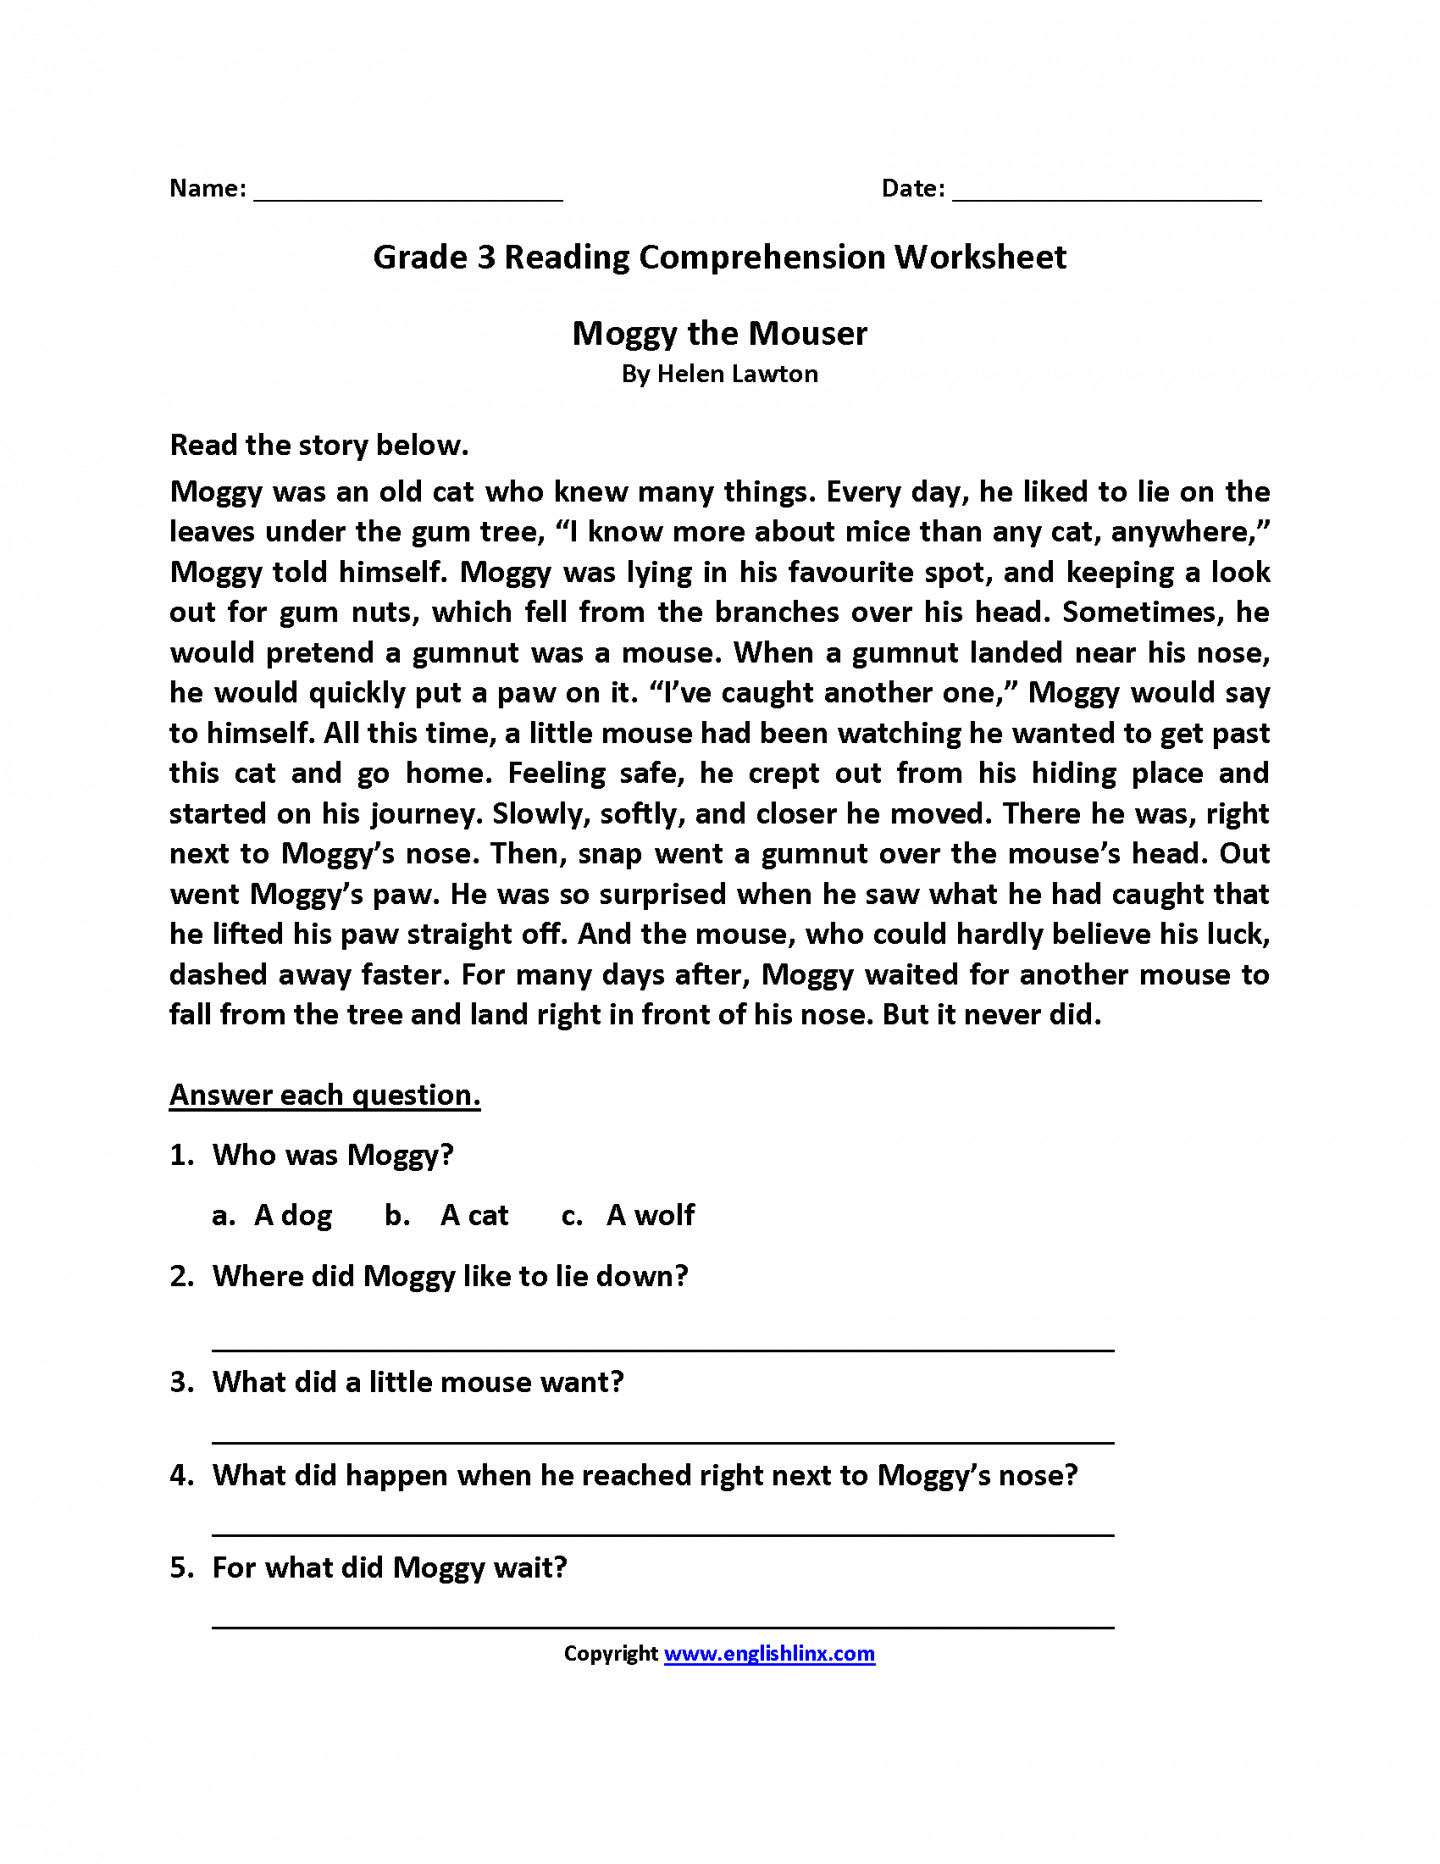 hight resolution of Dworksheet 3rd Grade Reading Comprehension Printable   Printable Worksheets  and Activities for Teachers